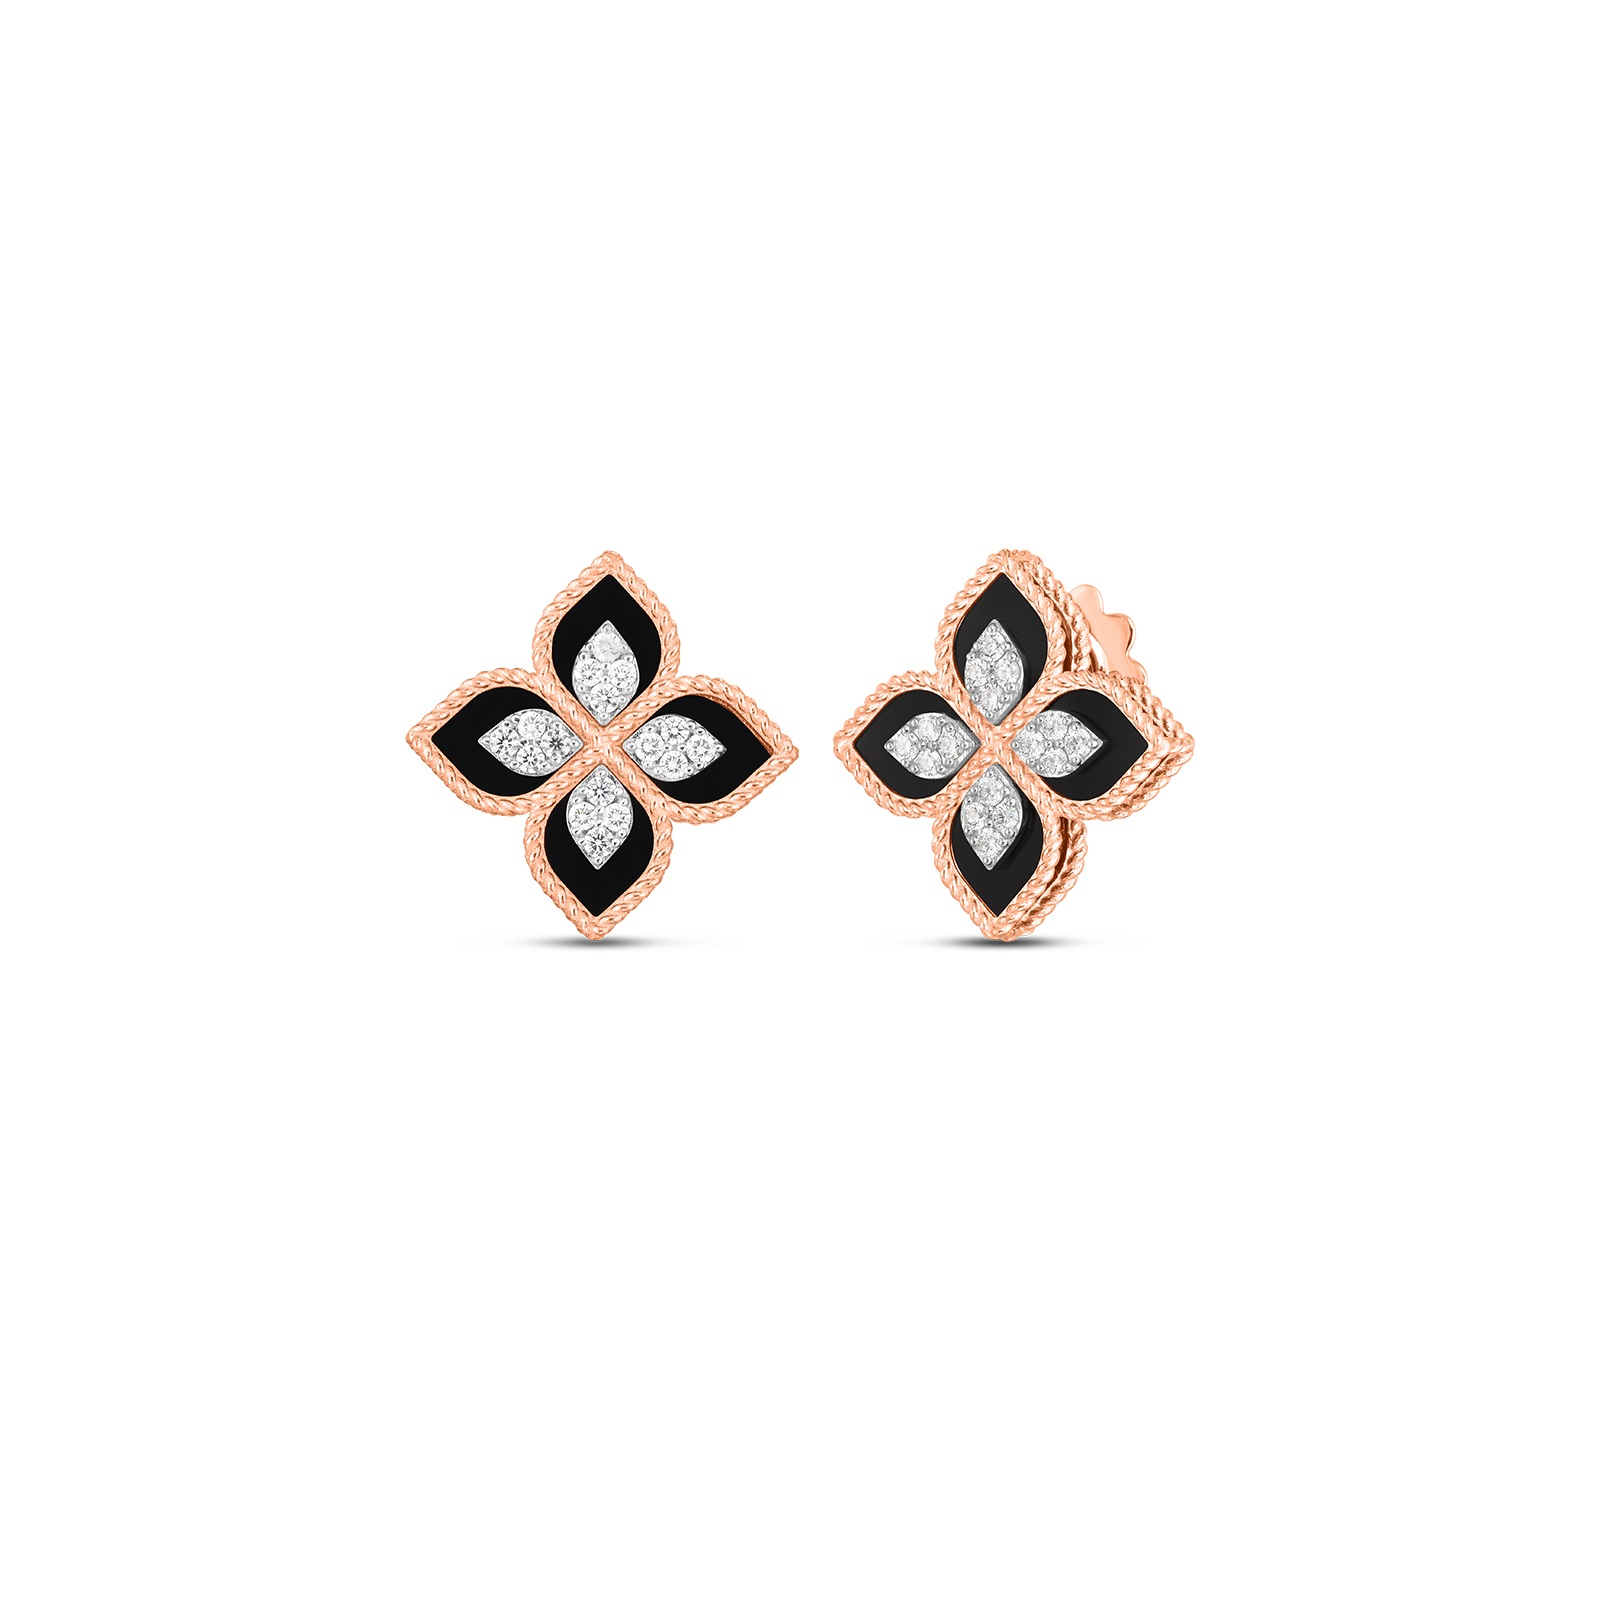 Roberto Coin 18K Rose Gold .35cts  Diamonds Gold Earrings with Stones 8882784AHERB